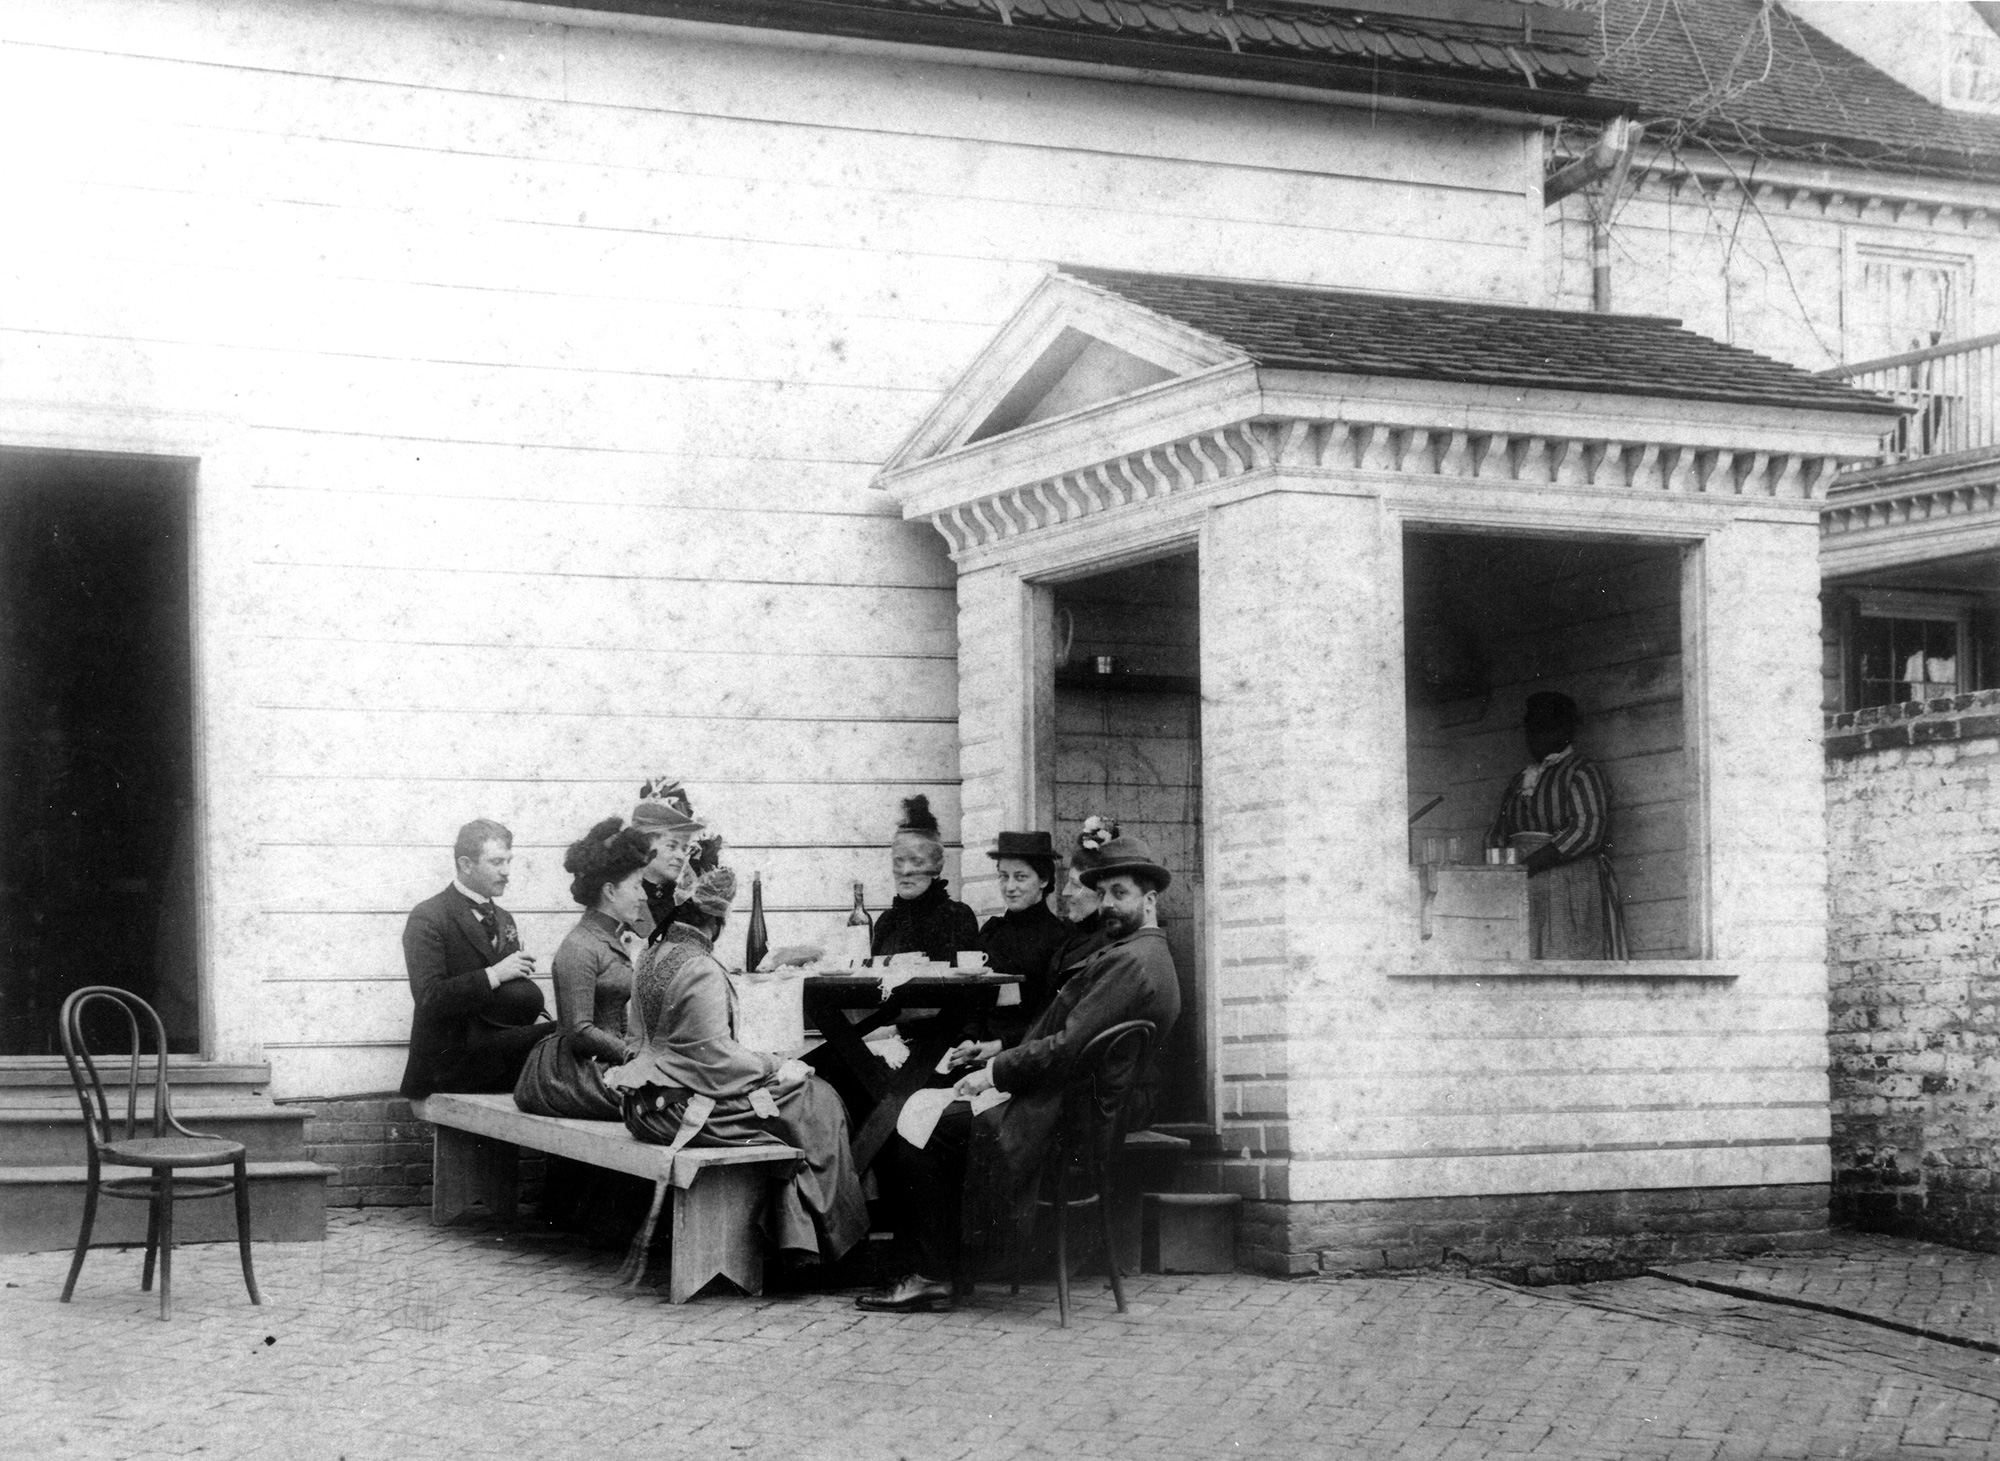 Some time in the late 19th century, a group of visitors gather for refreshments next to the well house located just outside Washington's kitchen. Though small by today's standards, this addiitonal stream of income helped to balance Mount Vernon's budget. Photo by Luke Dillon.